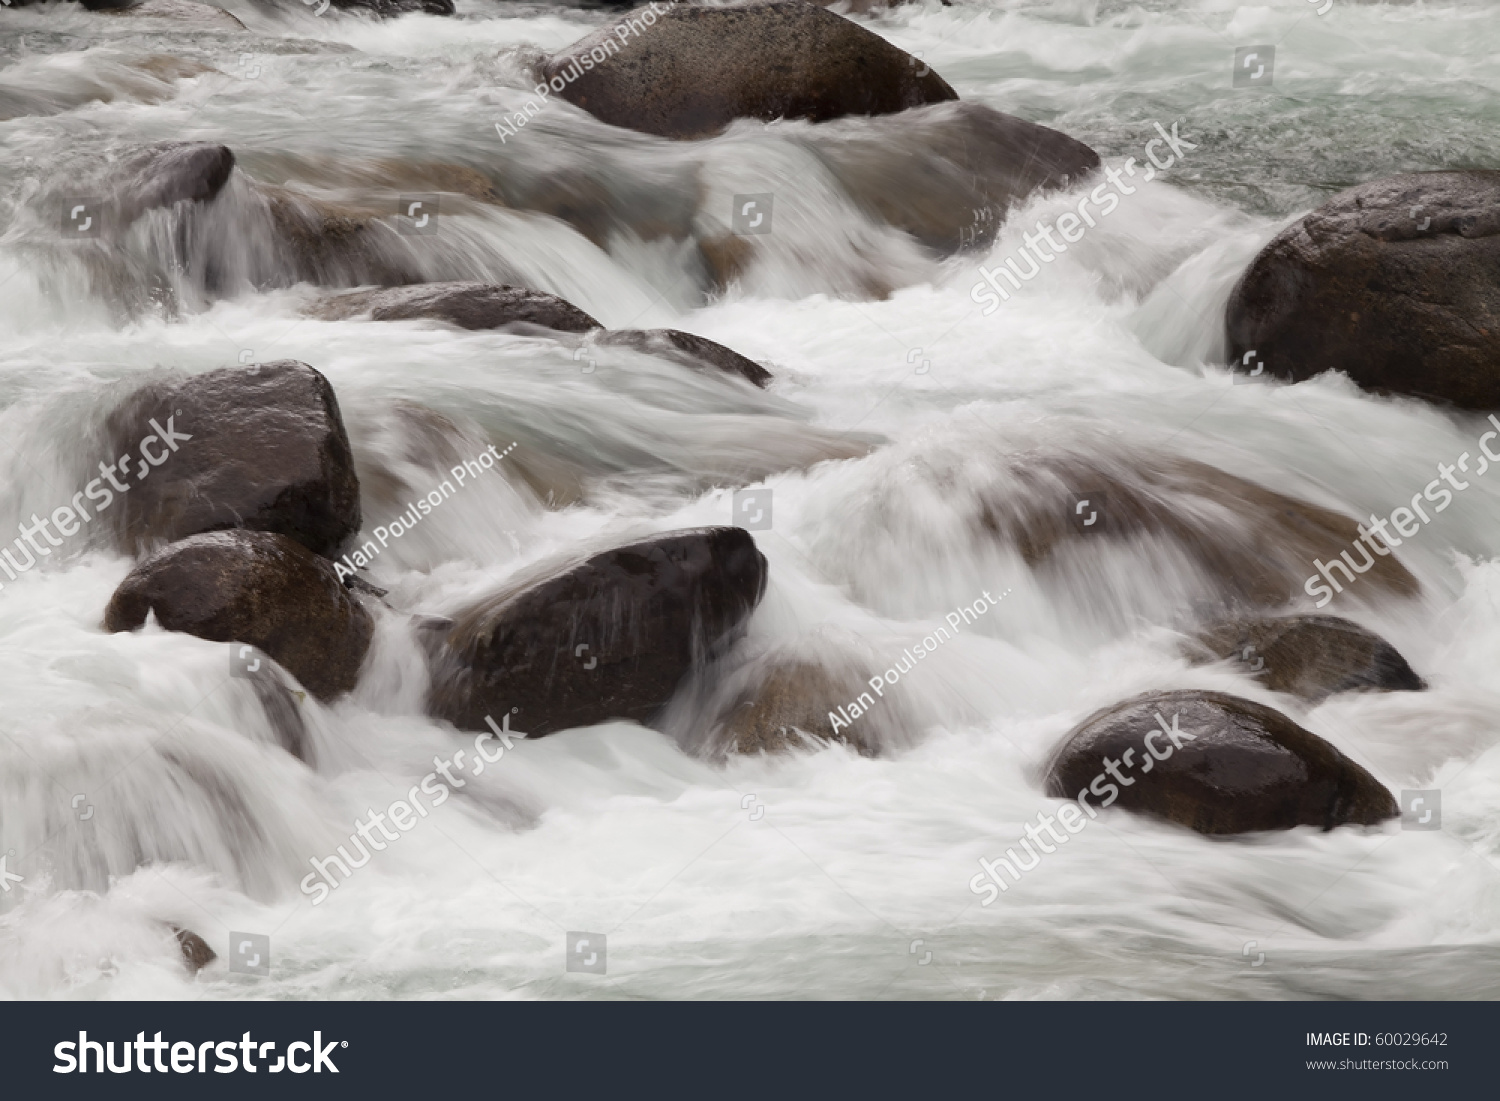 River Blured And Looking Peaceful Rolling Over Rocks